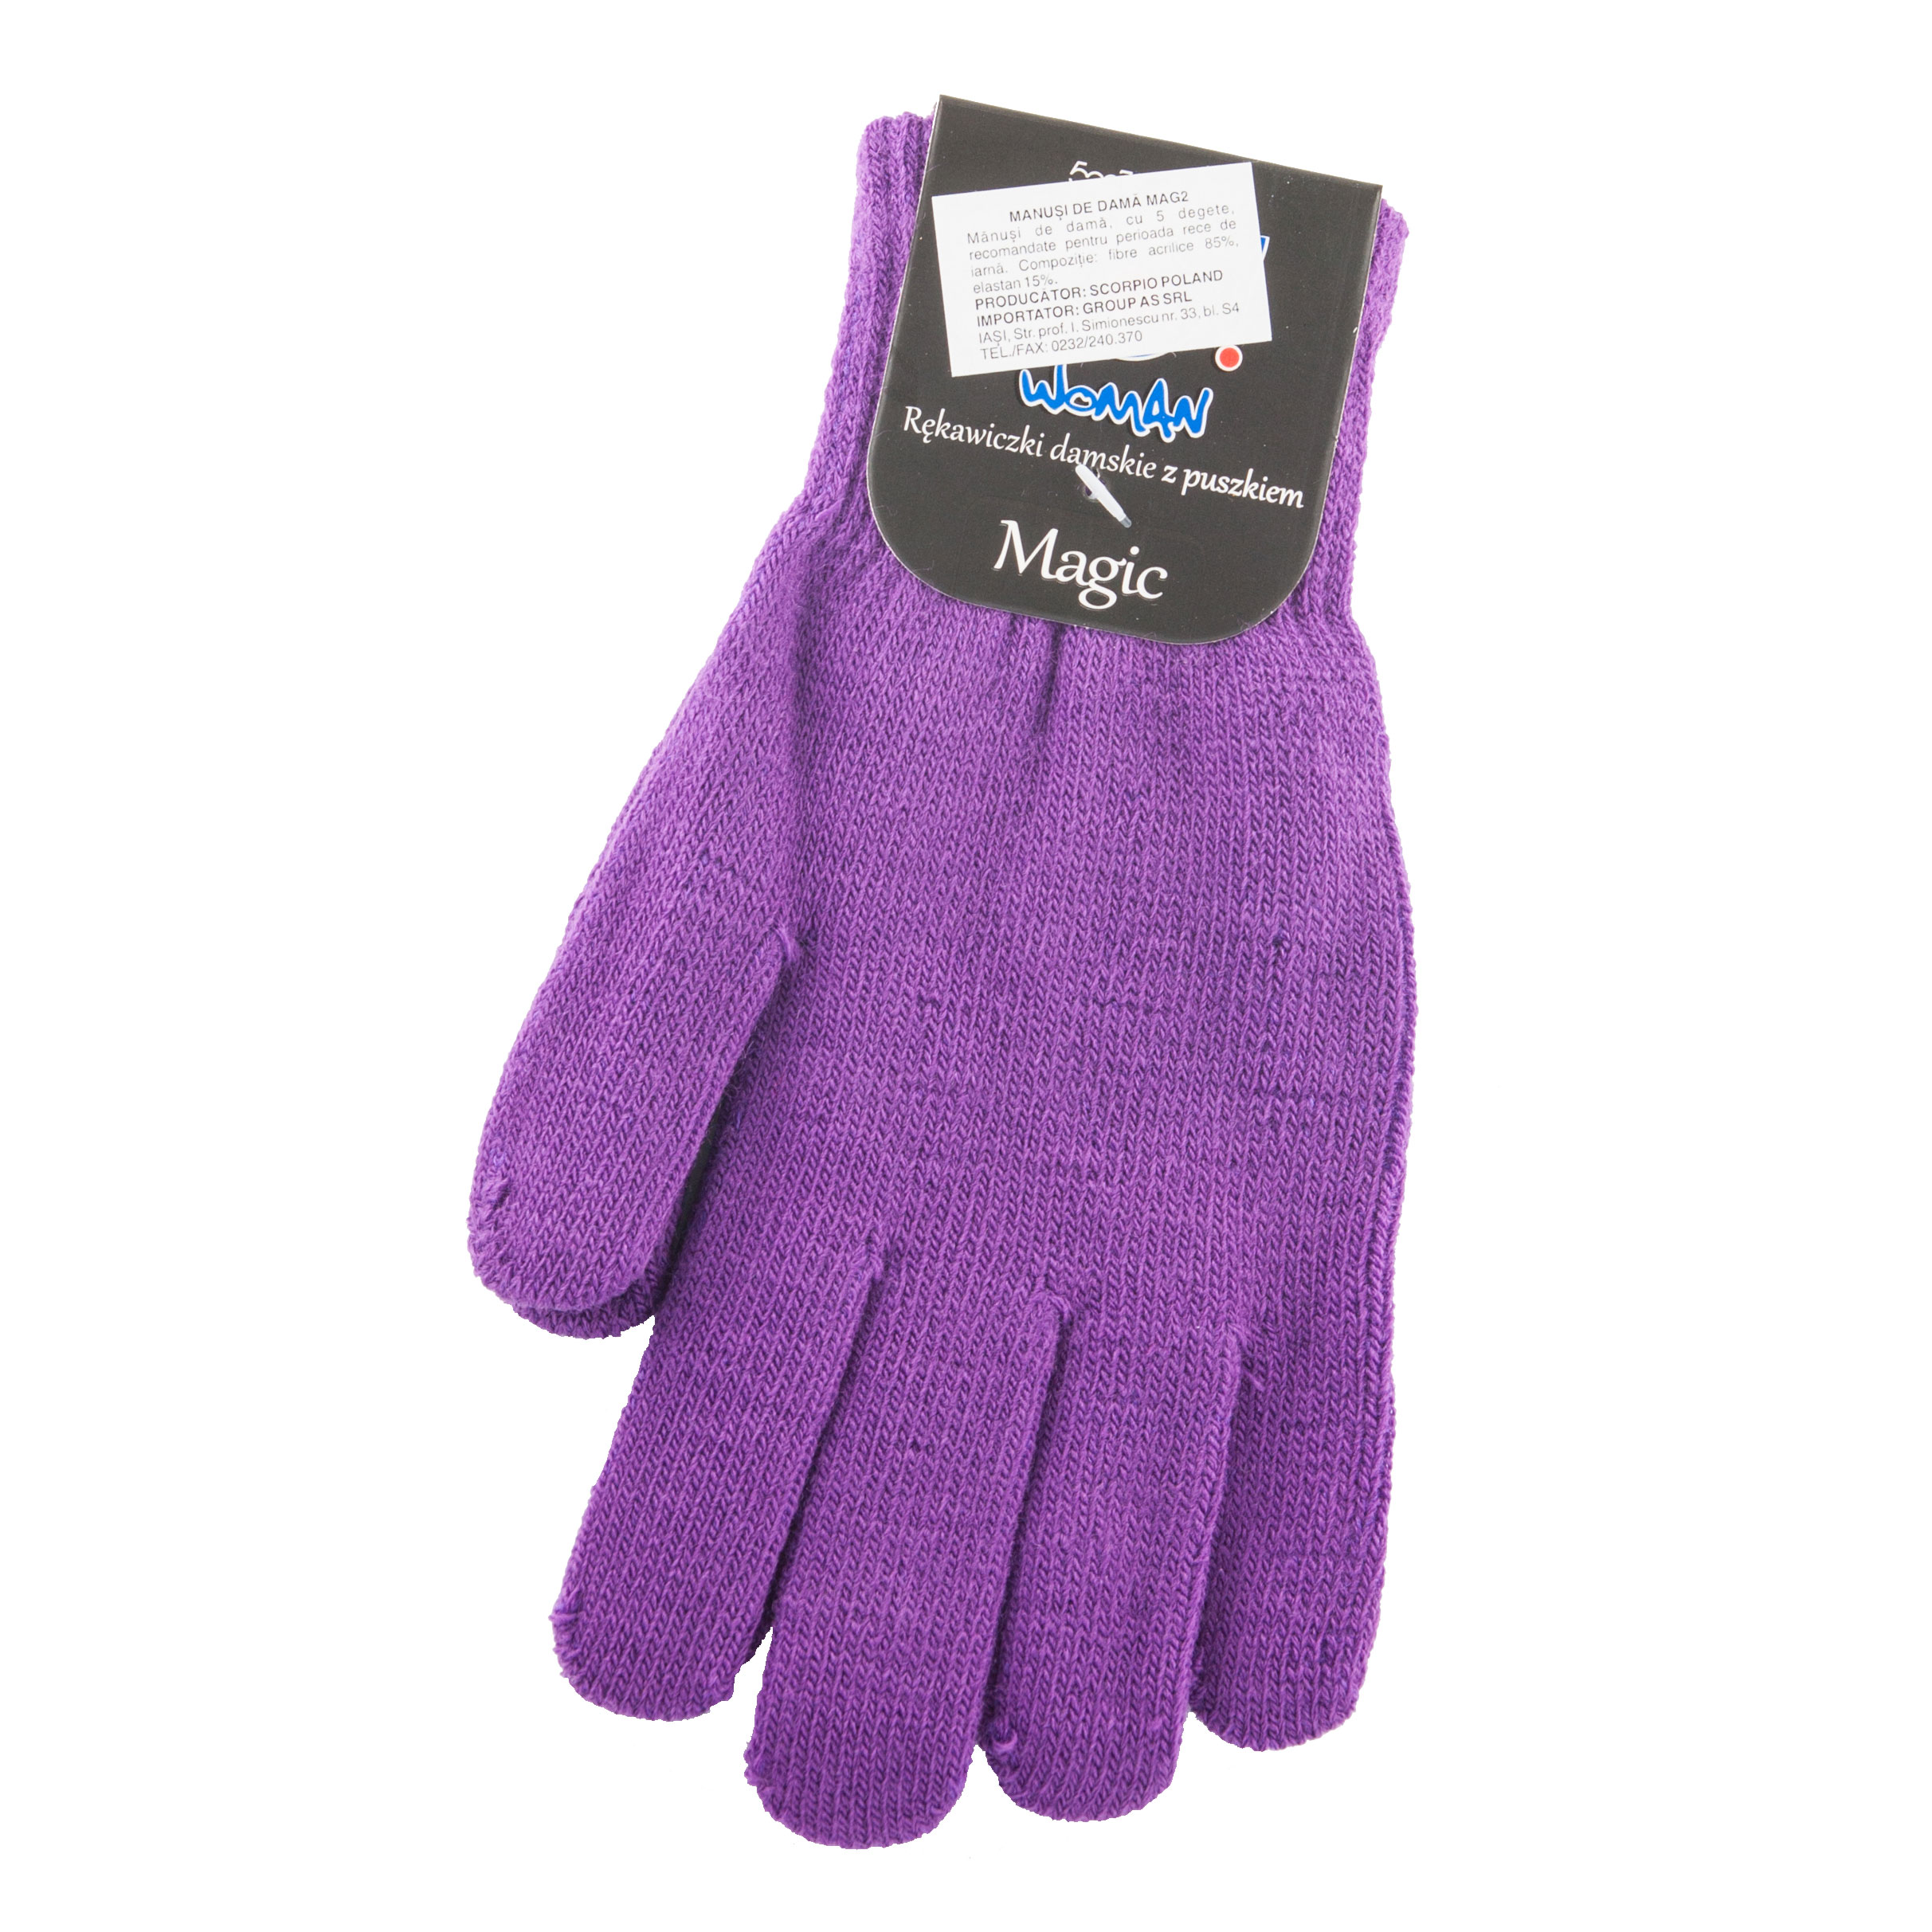 Acrylic gloves, mixed colors MAG2MIXT